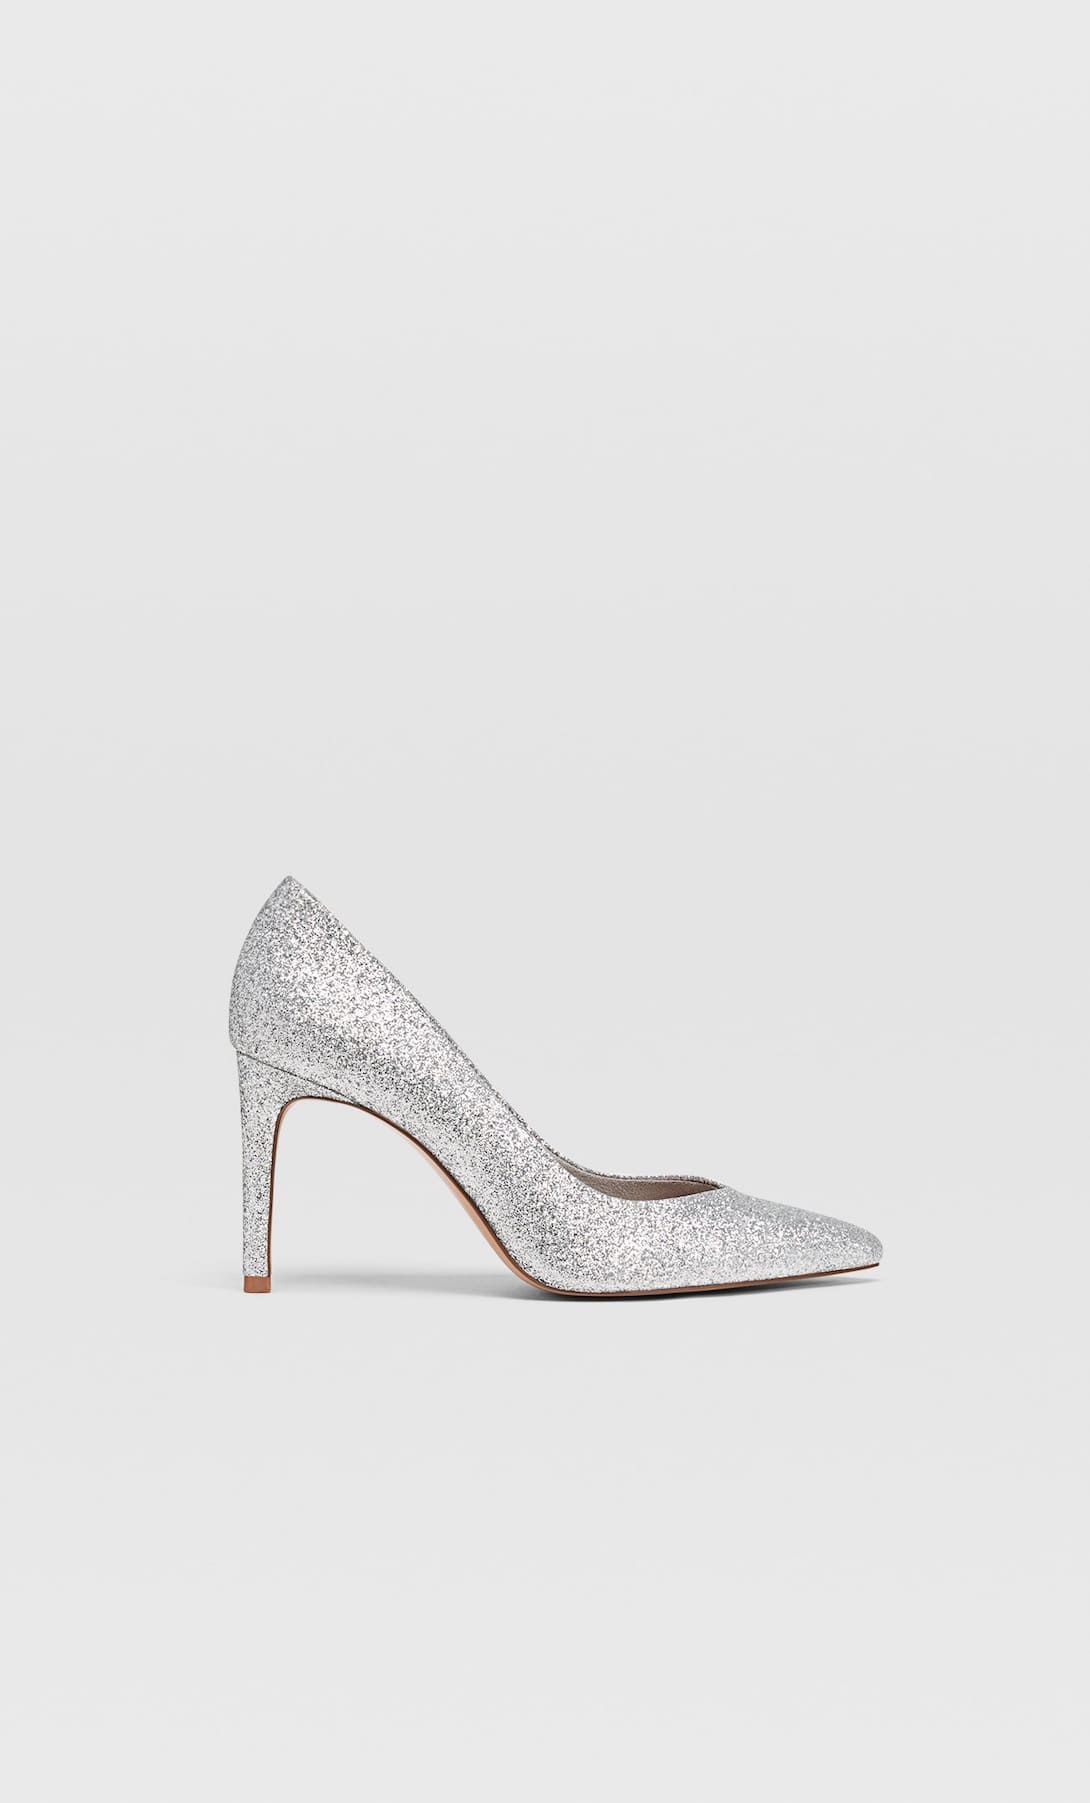 Silvery heeled shoes